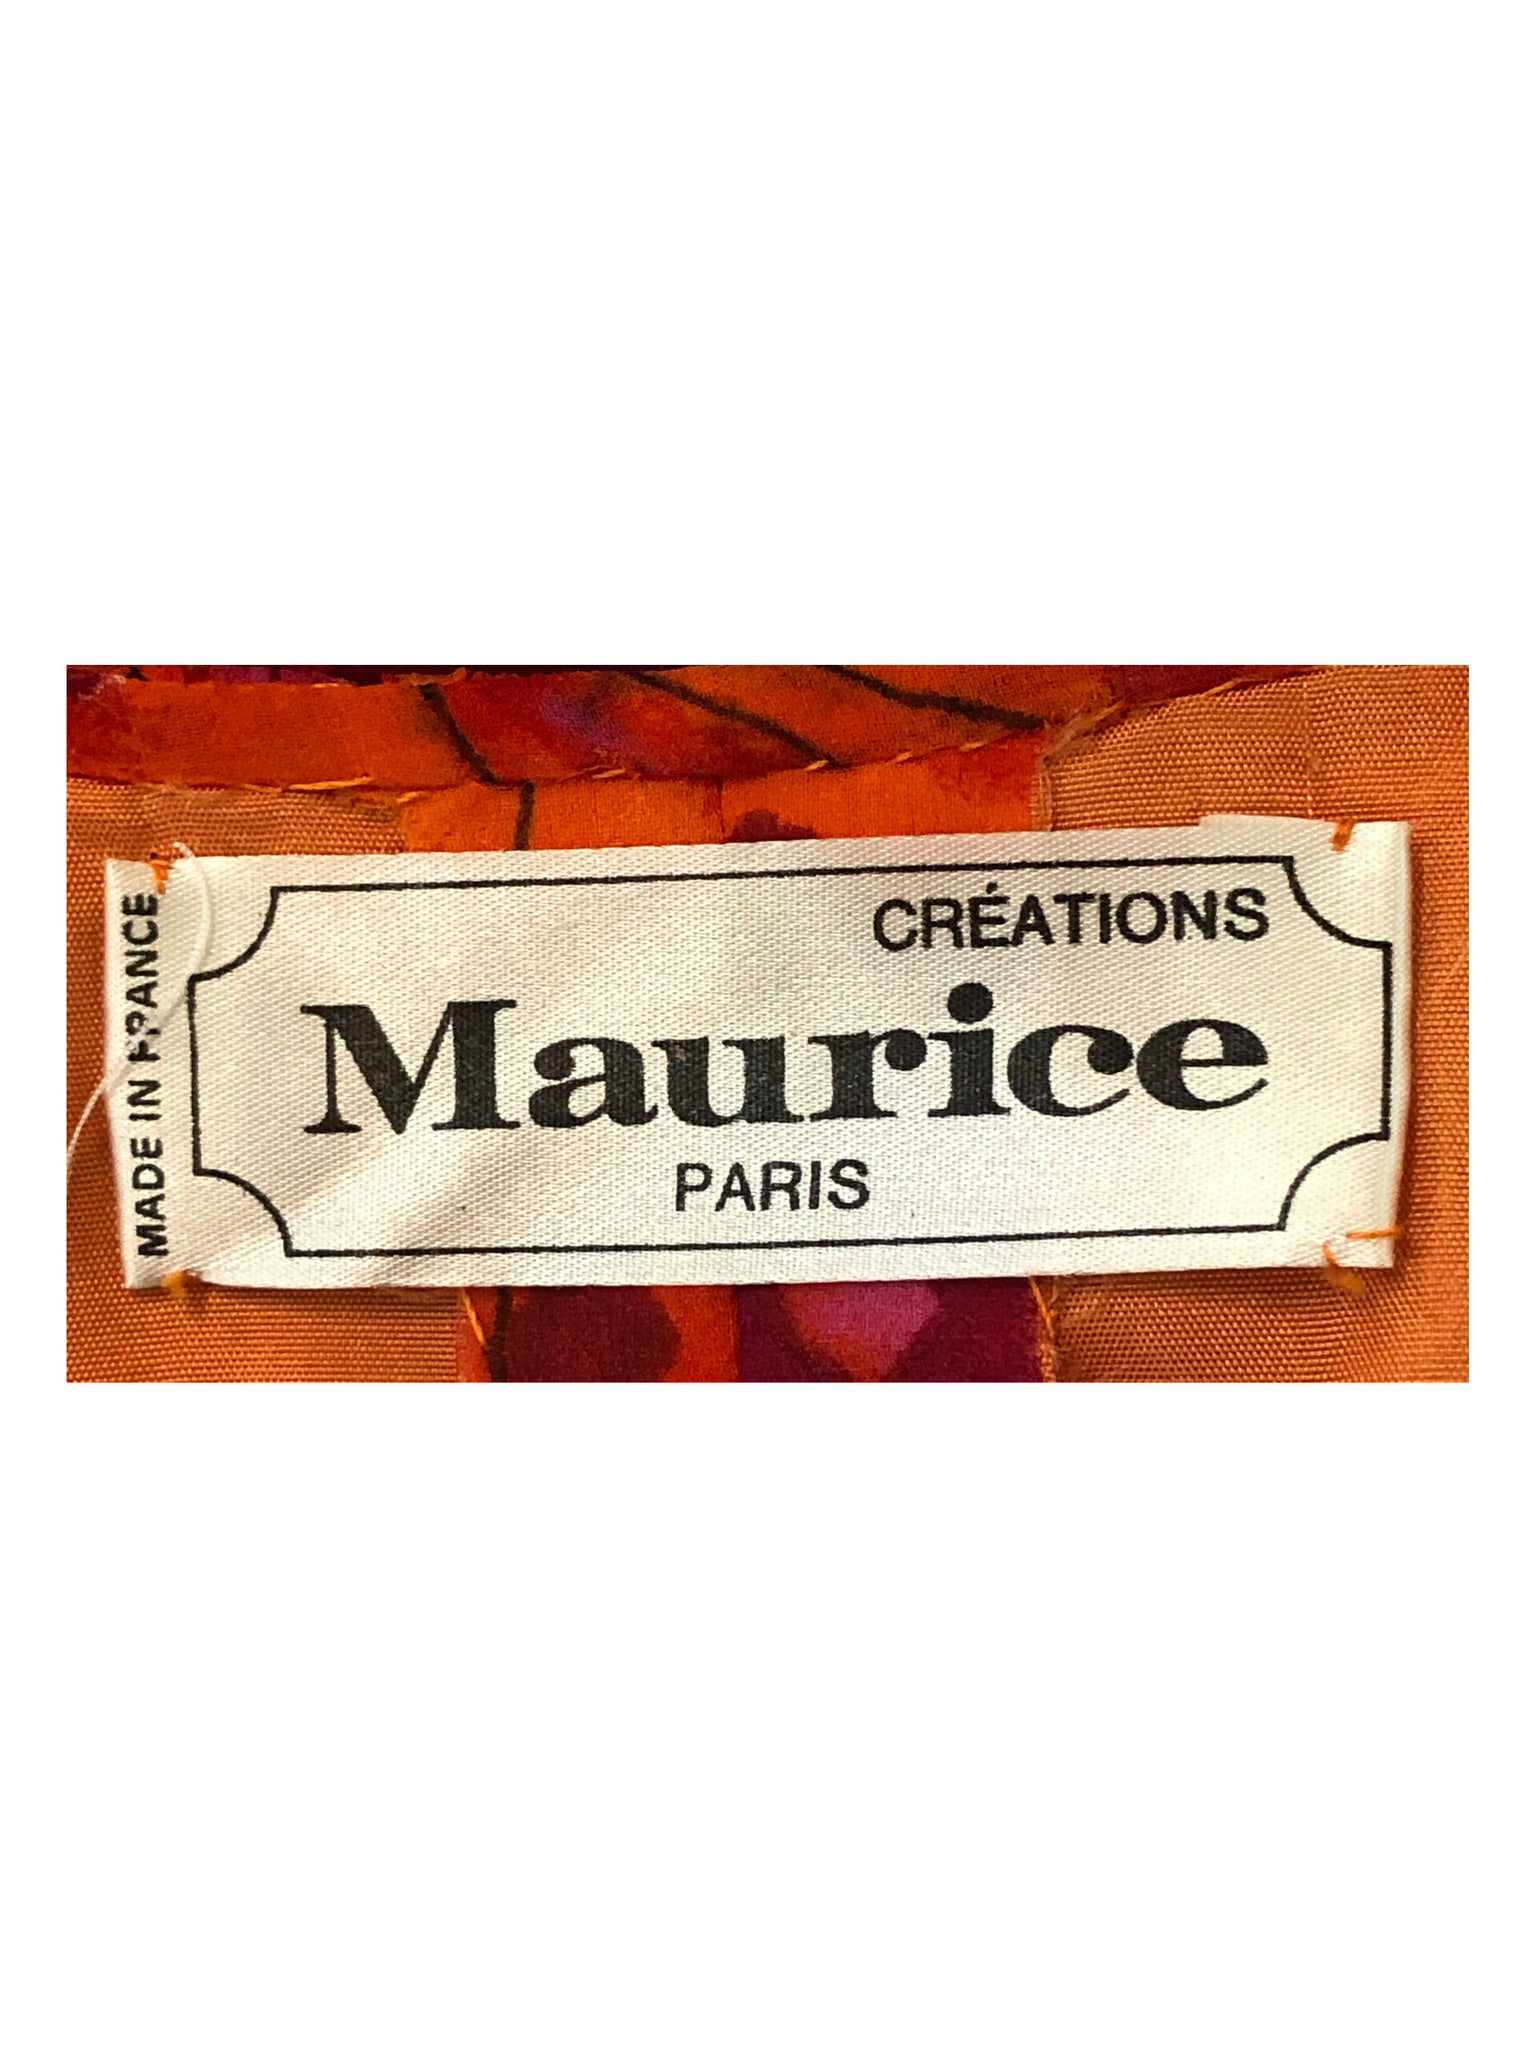 Maurice 60s Dress Purple and Orange Chiffon with Jeweled Ornament  LABEL 5 of 5